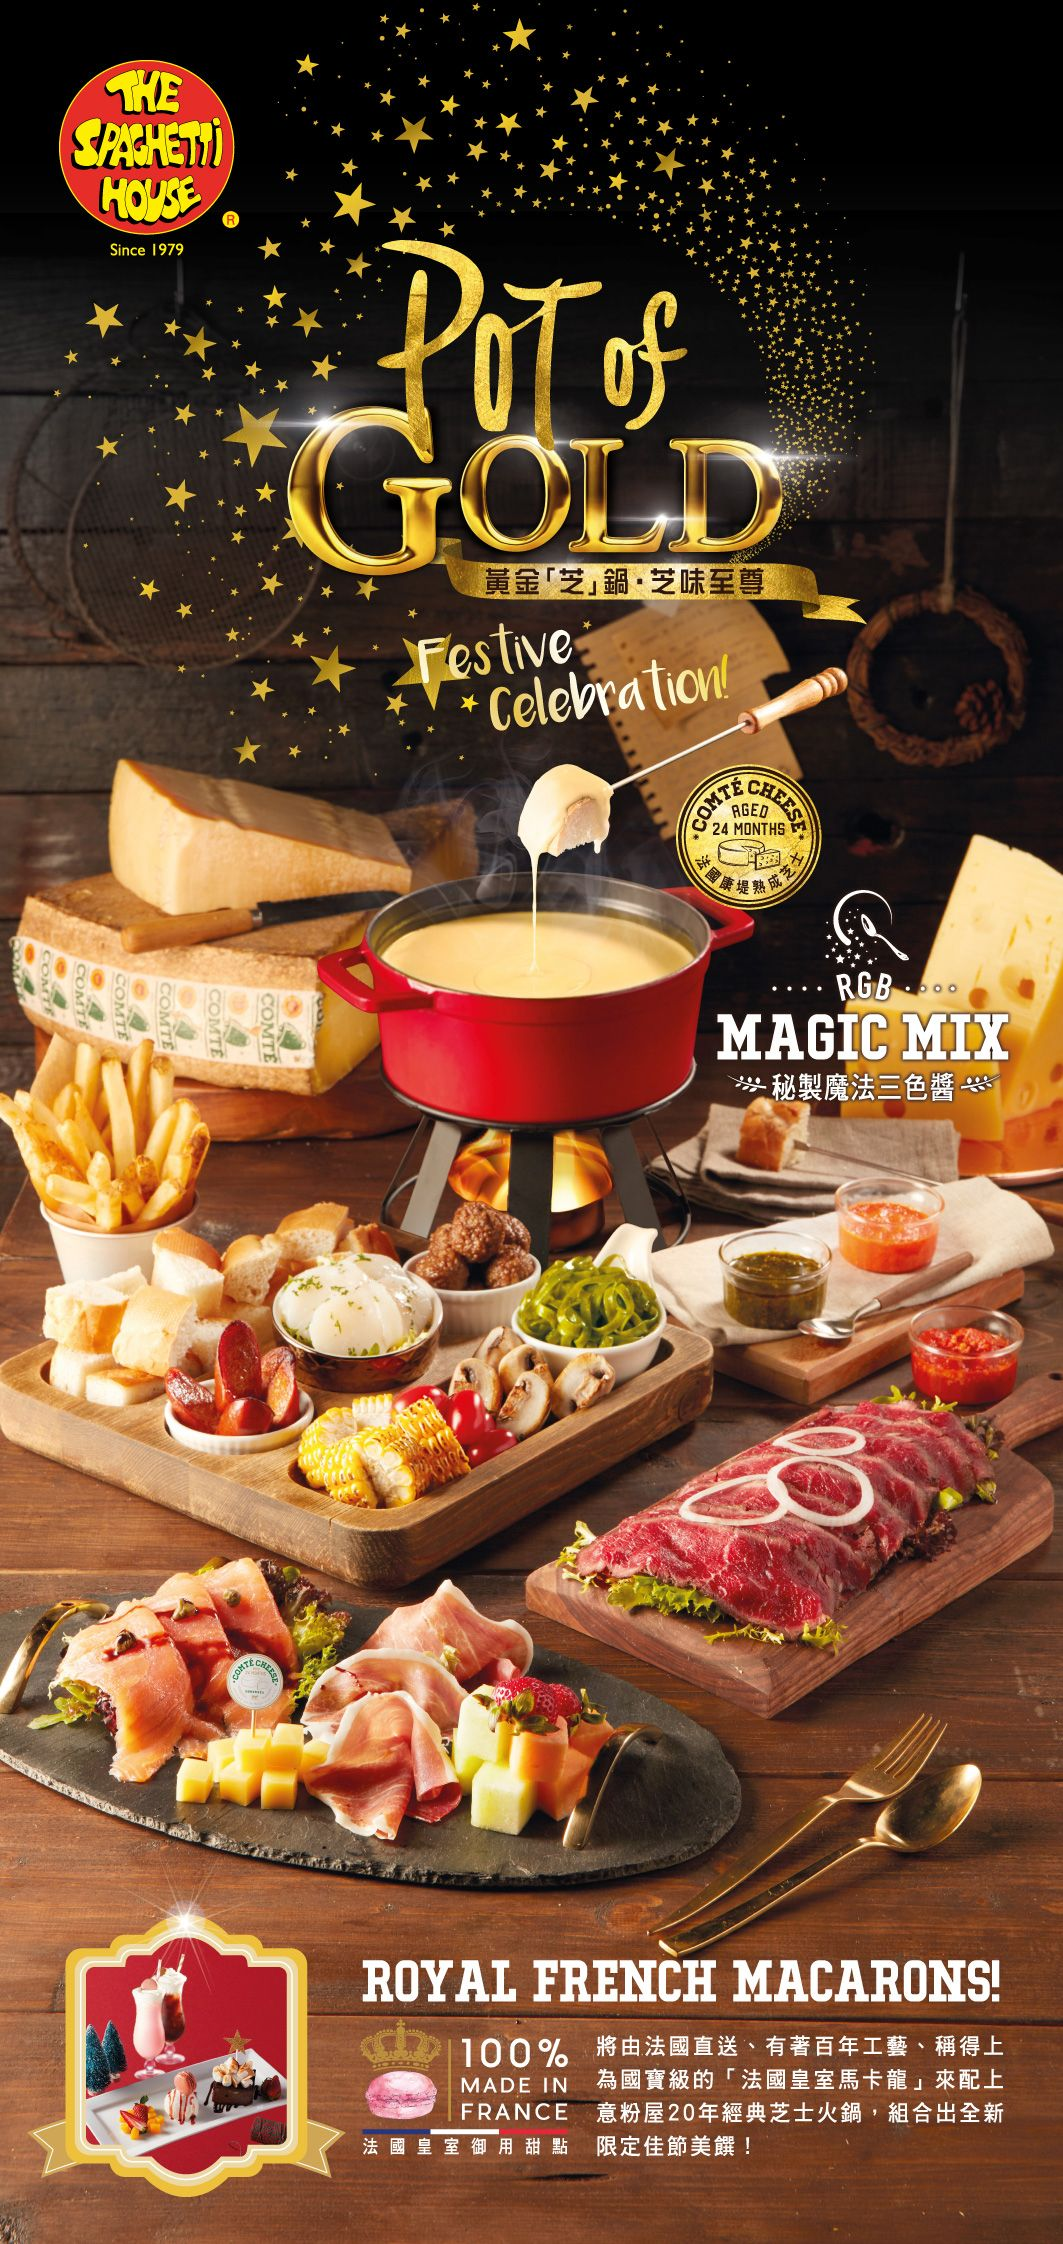 Pin by Chen Hou on Food & Beverage ads | Food photography ...